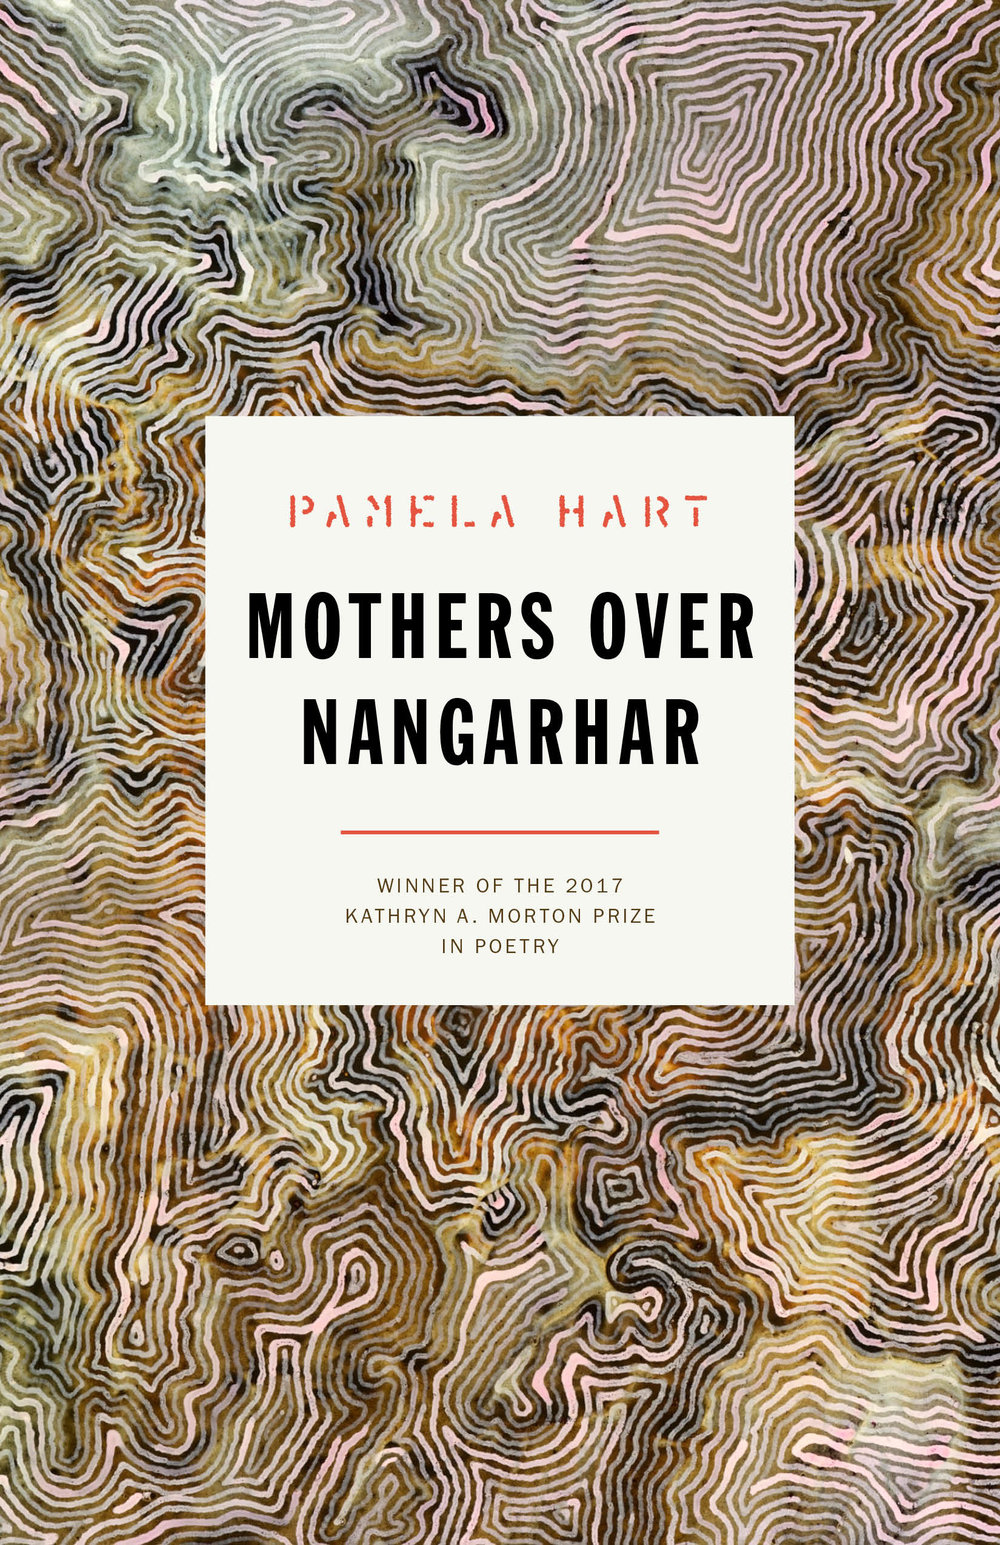 Hart+Mothers+Over+Nangarhar.jpg